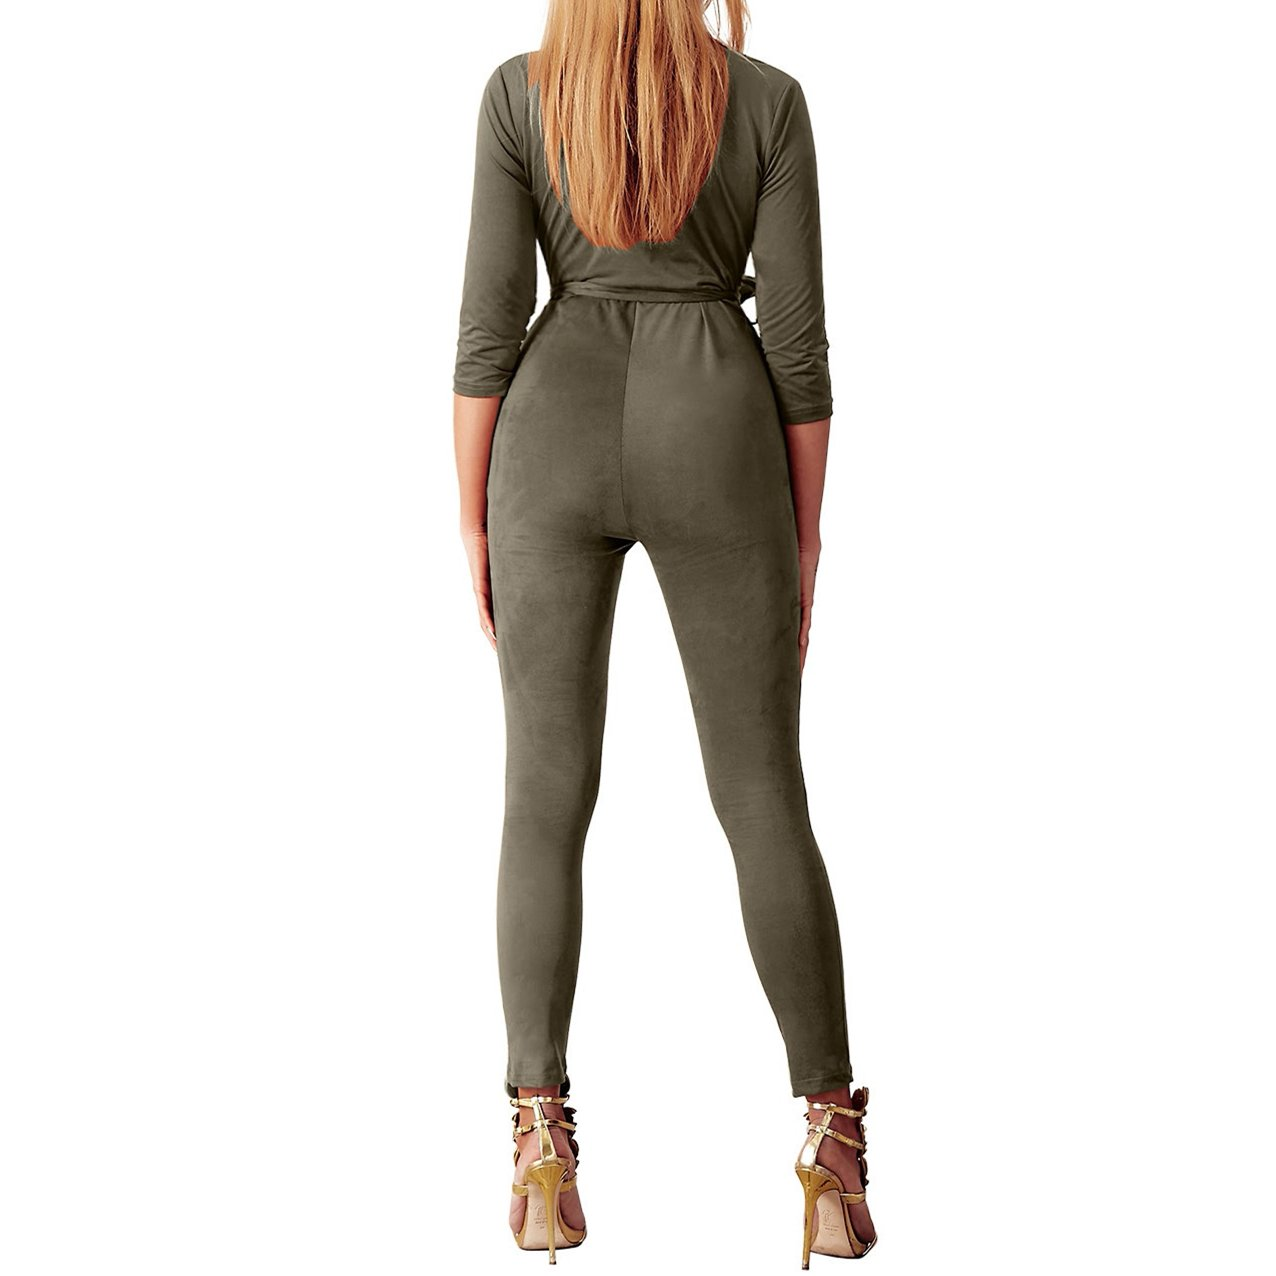 9c9d5bb5af1 Amazon.com  Yizenge Women s Sexy Suede Deep V-Neck 3 4 Sleeve Party  Clubwear Romper Jumpsuit  Clothing